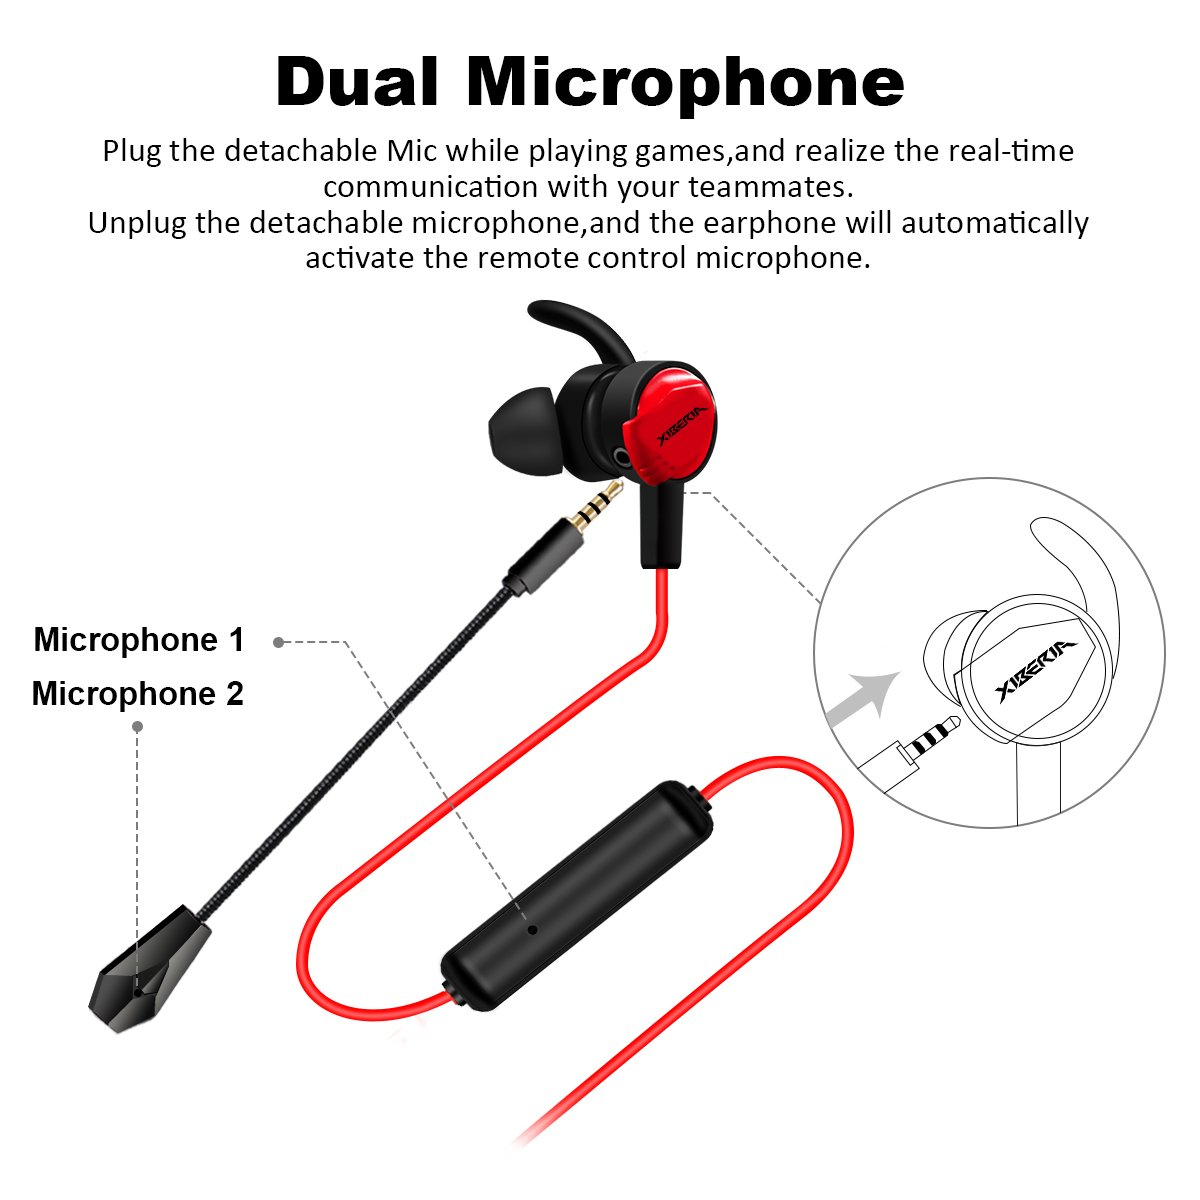 In Ear Gaming Headphones Elegiant Wired Video Noise Mic Headphone Jack Wiring Diagram Reduction Earbuds With Dual Microphone Ergonomic Comfort Fit Headsets For Pc Ps4